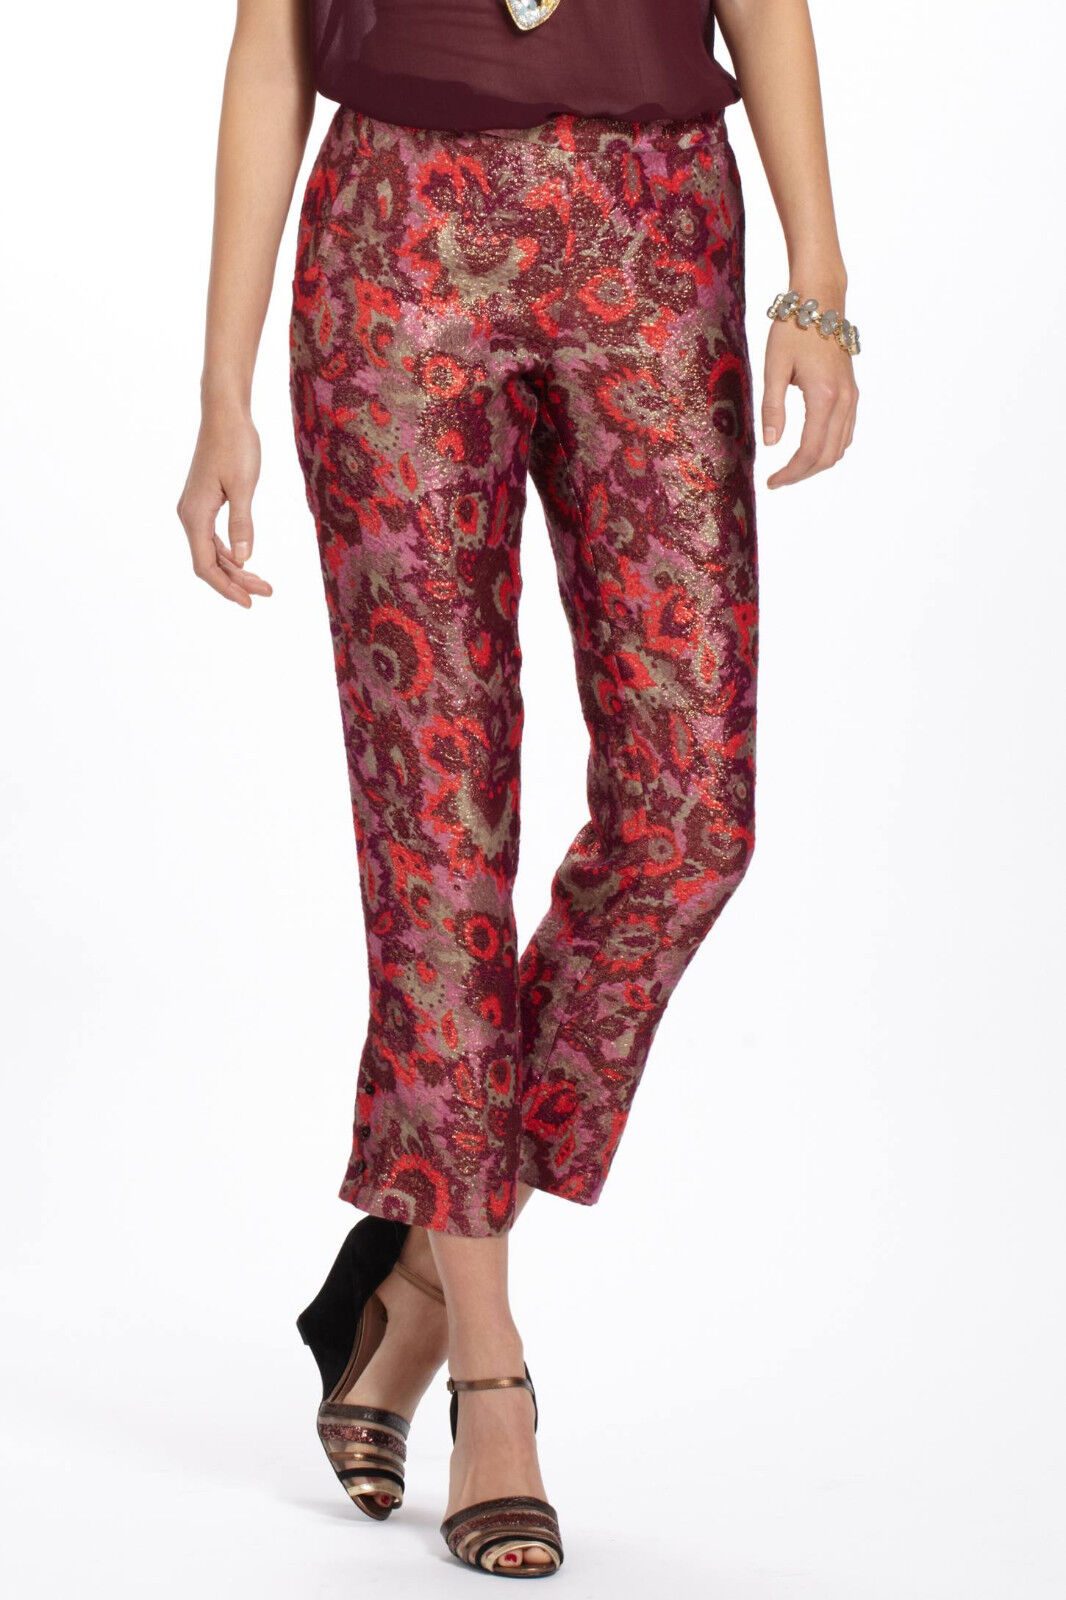 Elevenses Paisley Brocade Crops Pants Size XS, S, M, NW ANTHROPOLOGIE Tag